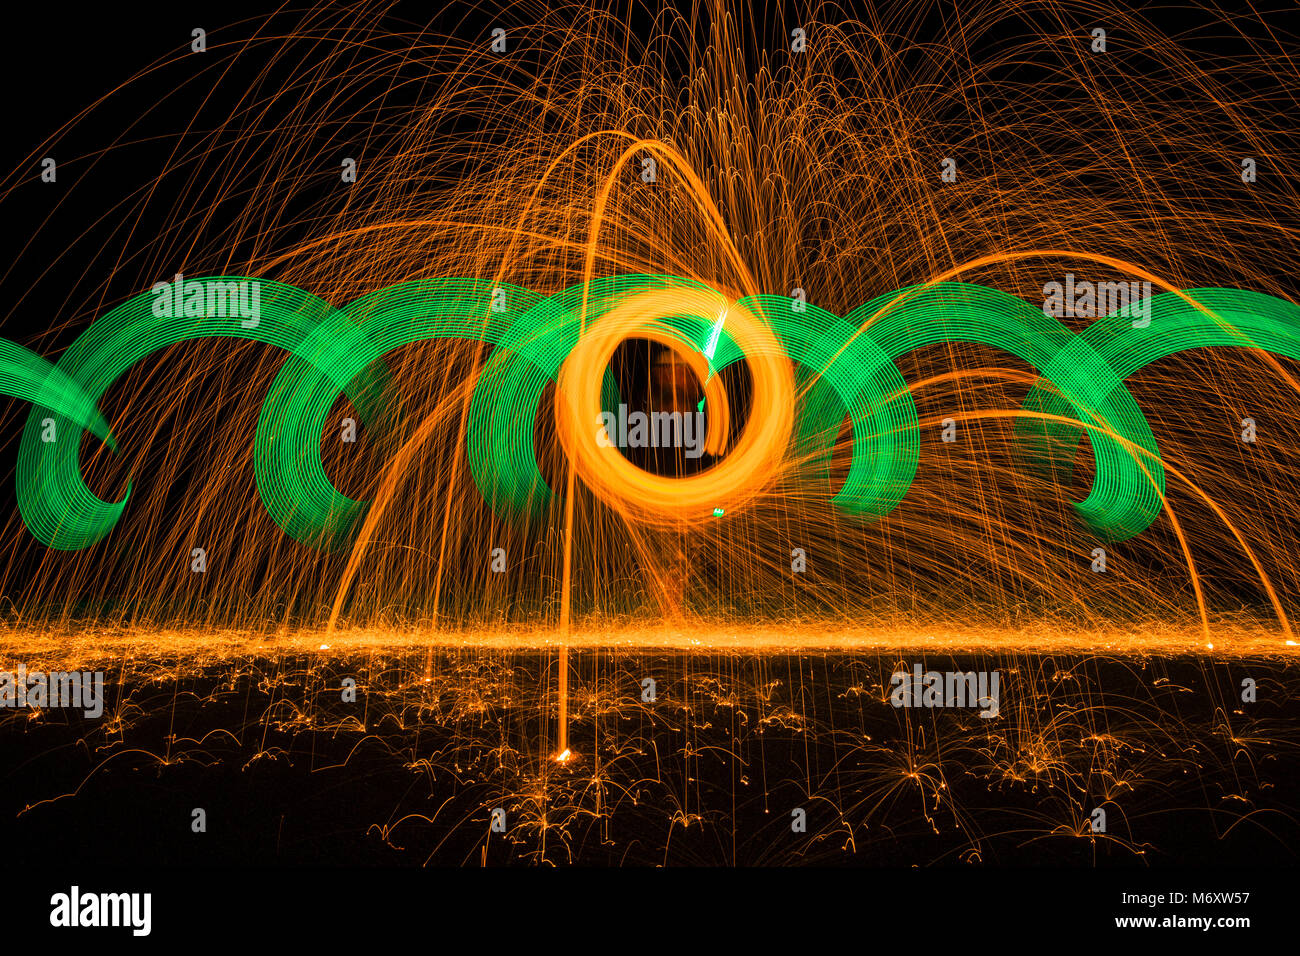 Light painting with steel wool and neon light with effects in orange and green. - Stock Image